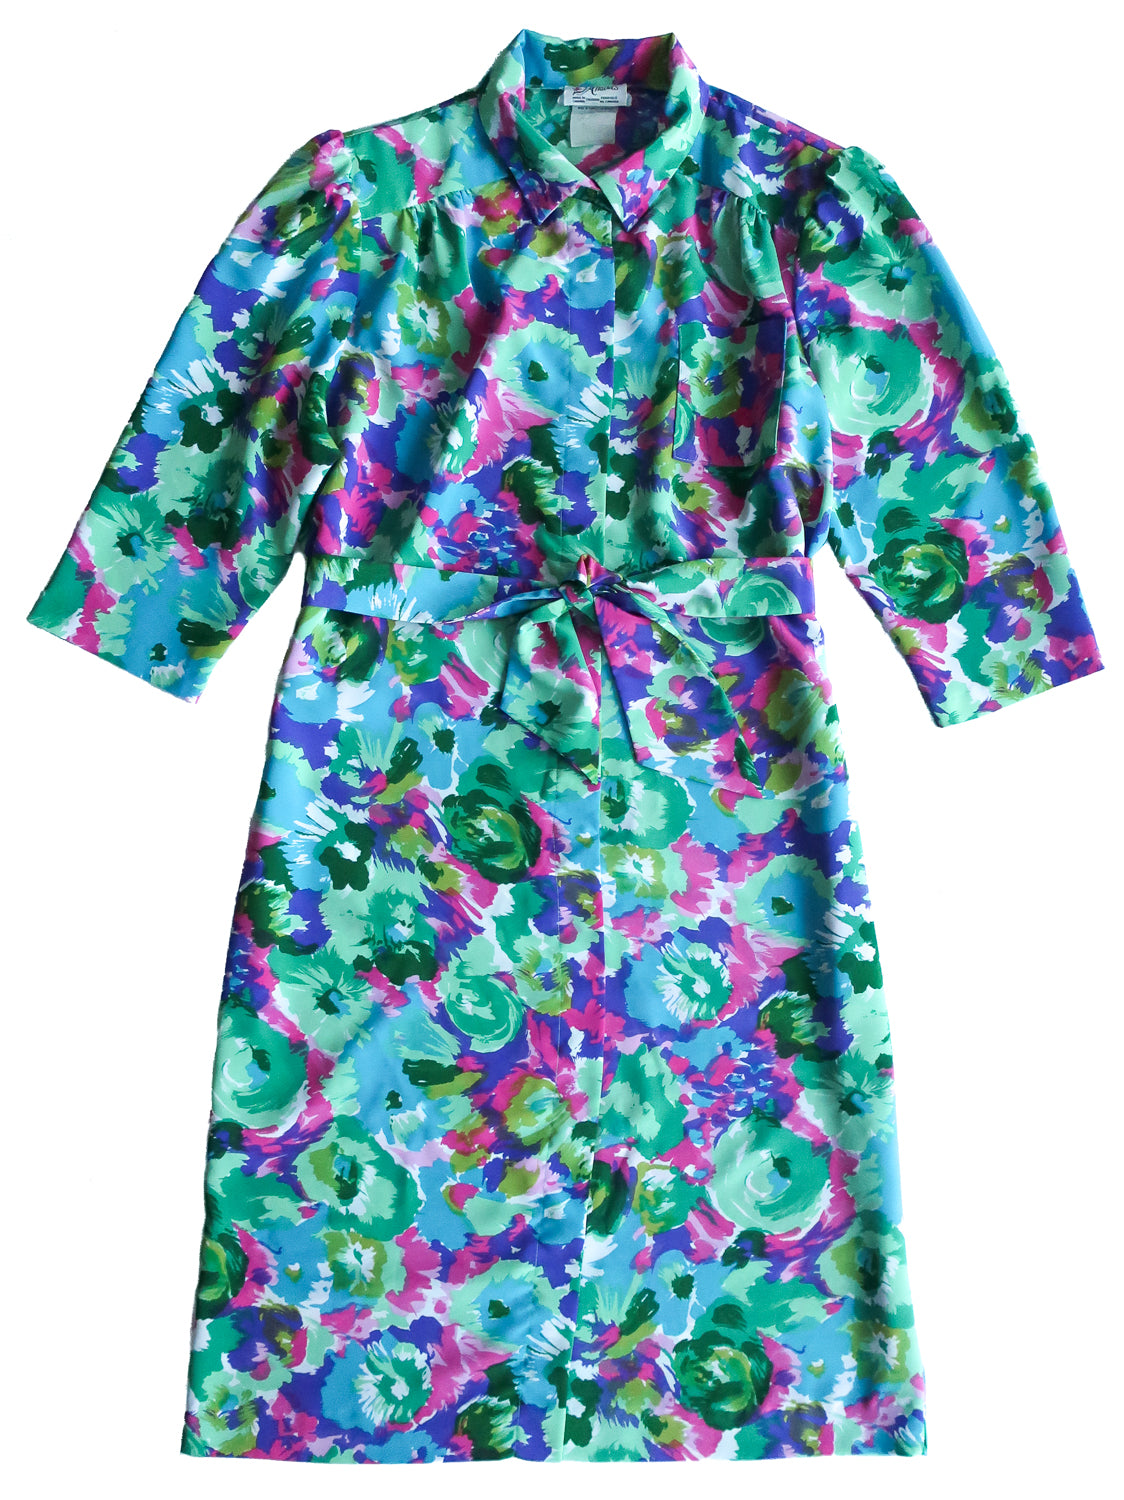 Vintage D'Allairds Floral Shirt Dress